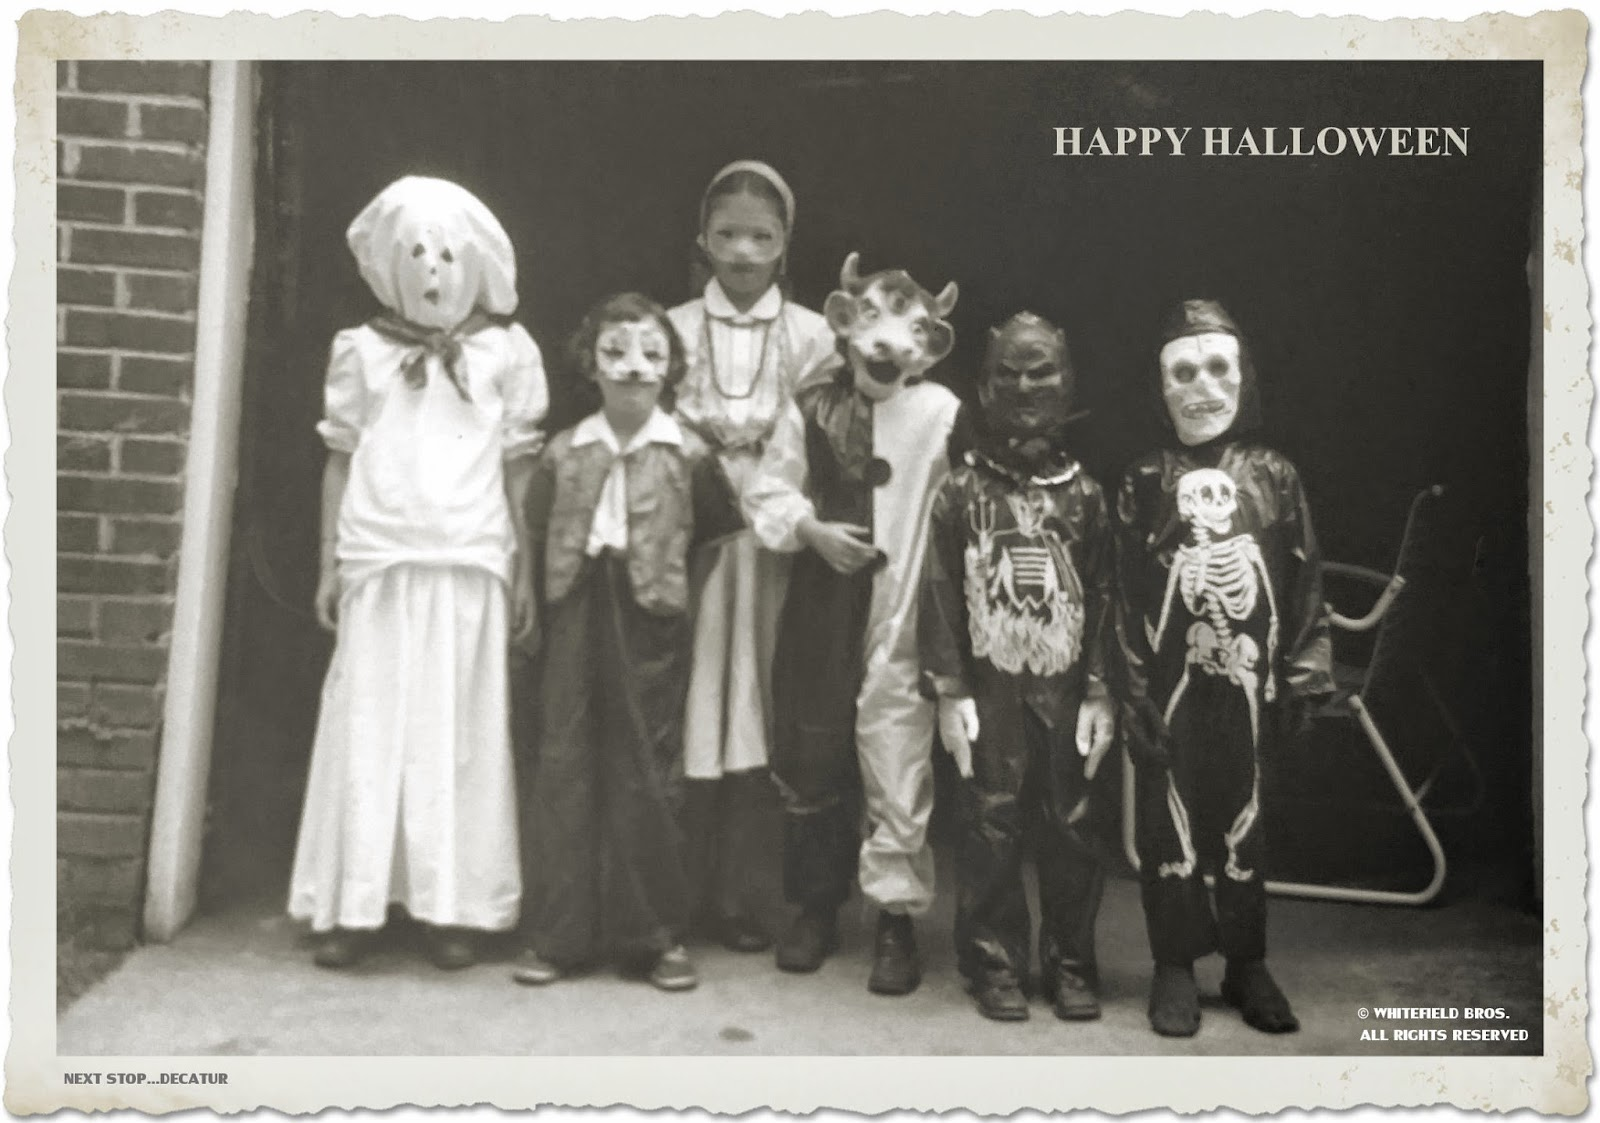 happy halloween from a 1950s decatur ga